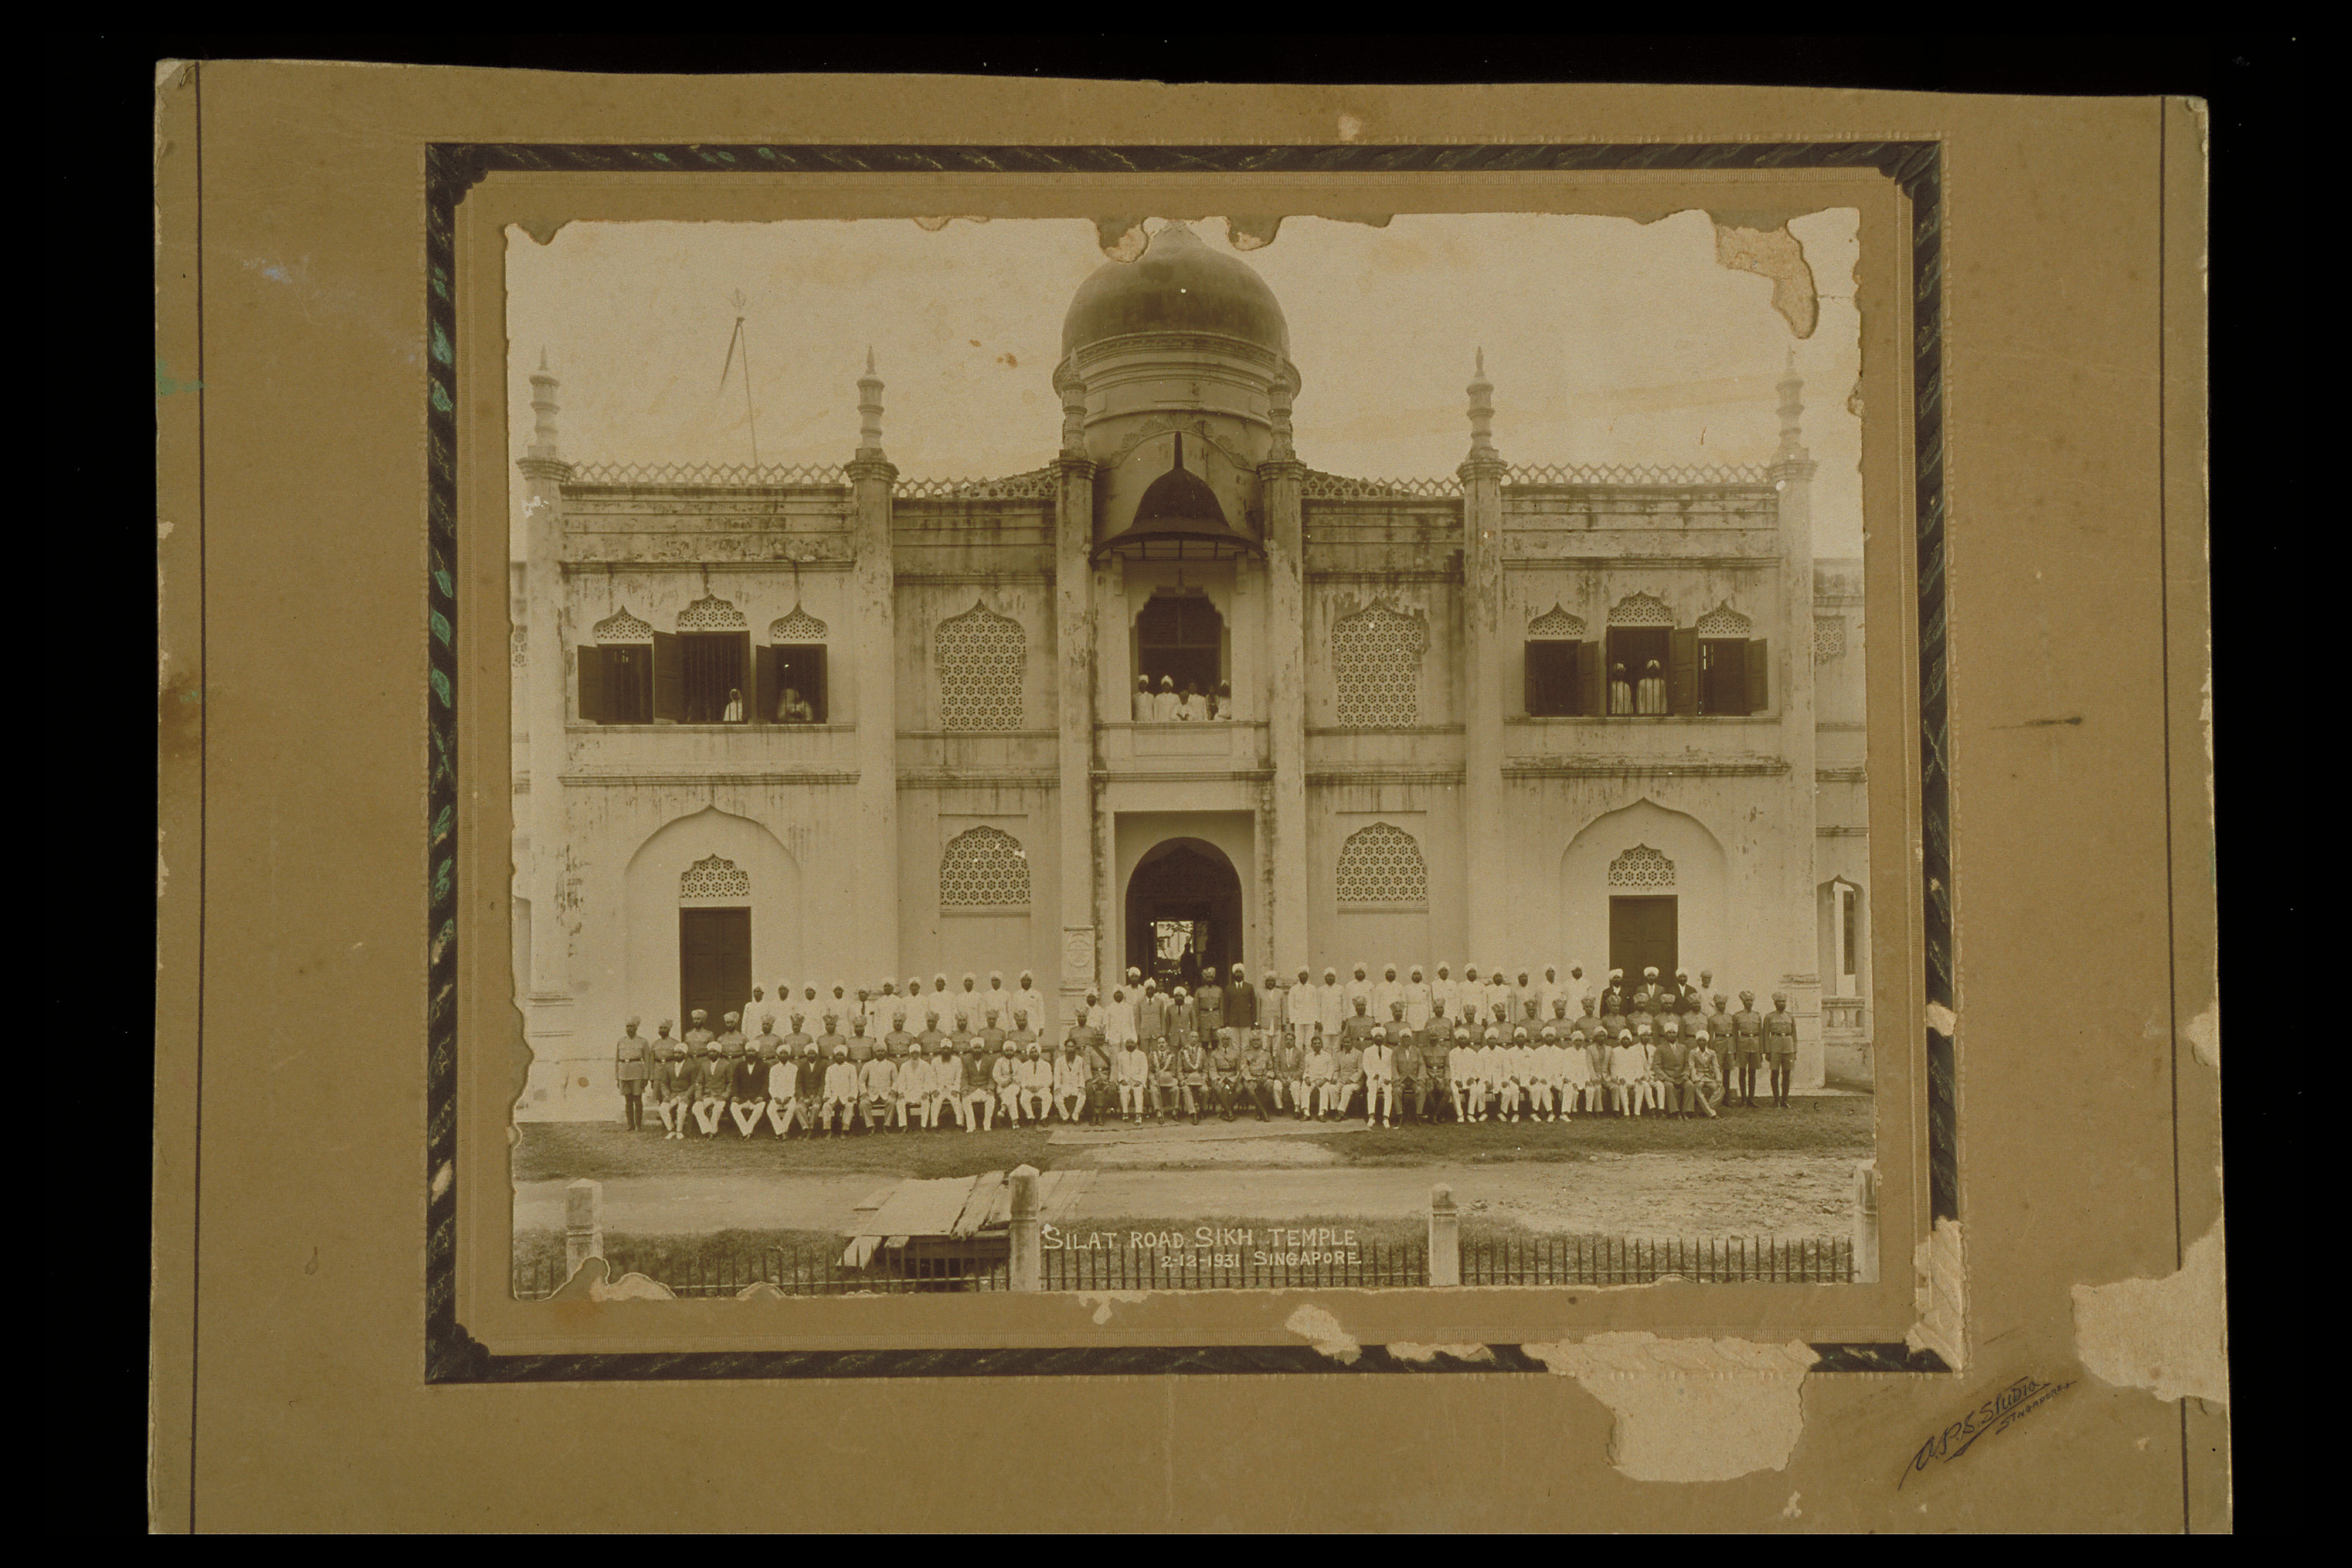 The Sikh's arrival in Singapore to join the Sikh Police Contingent under the British colonial administration at the time can be traced back to the late 19th century